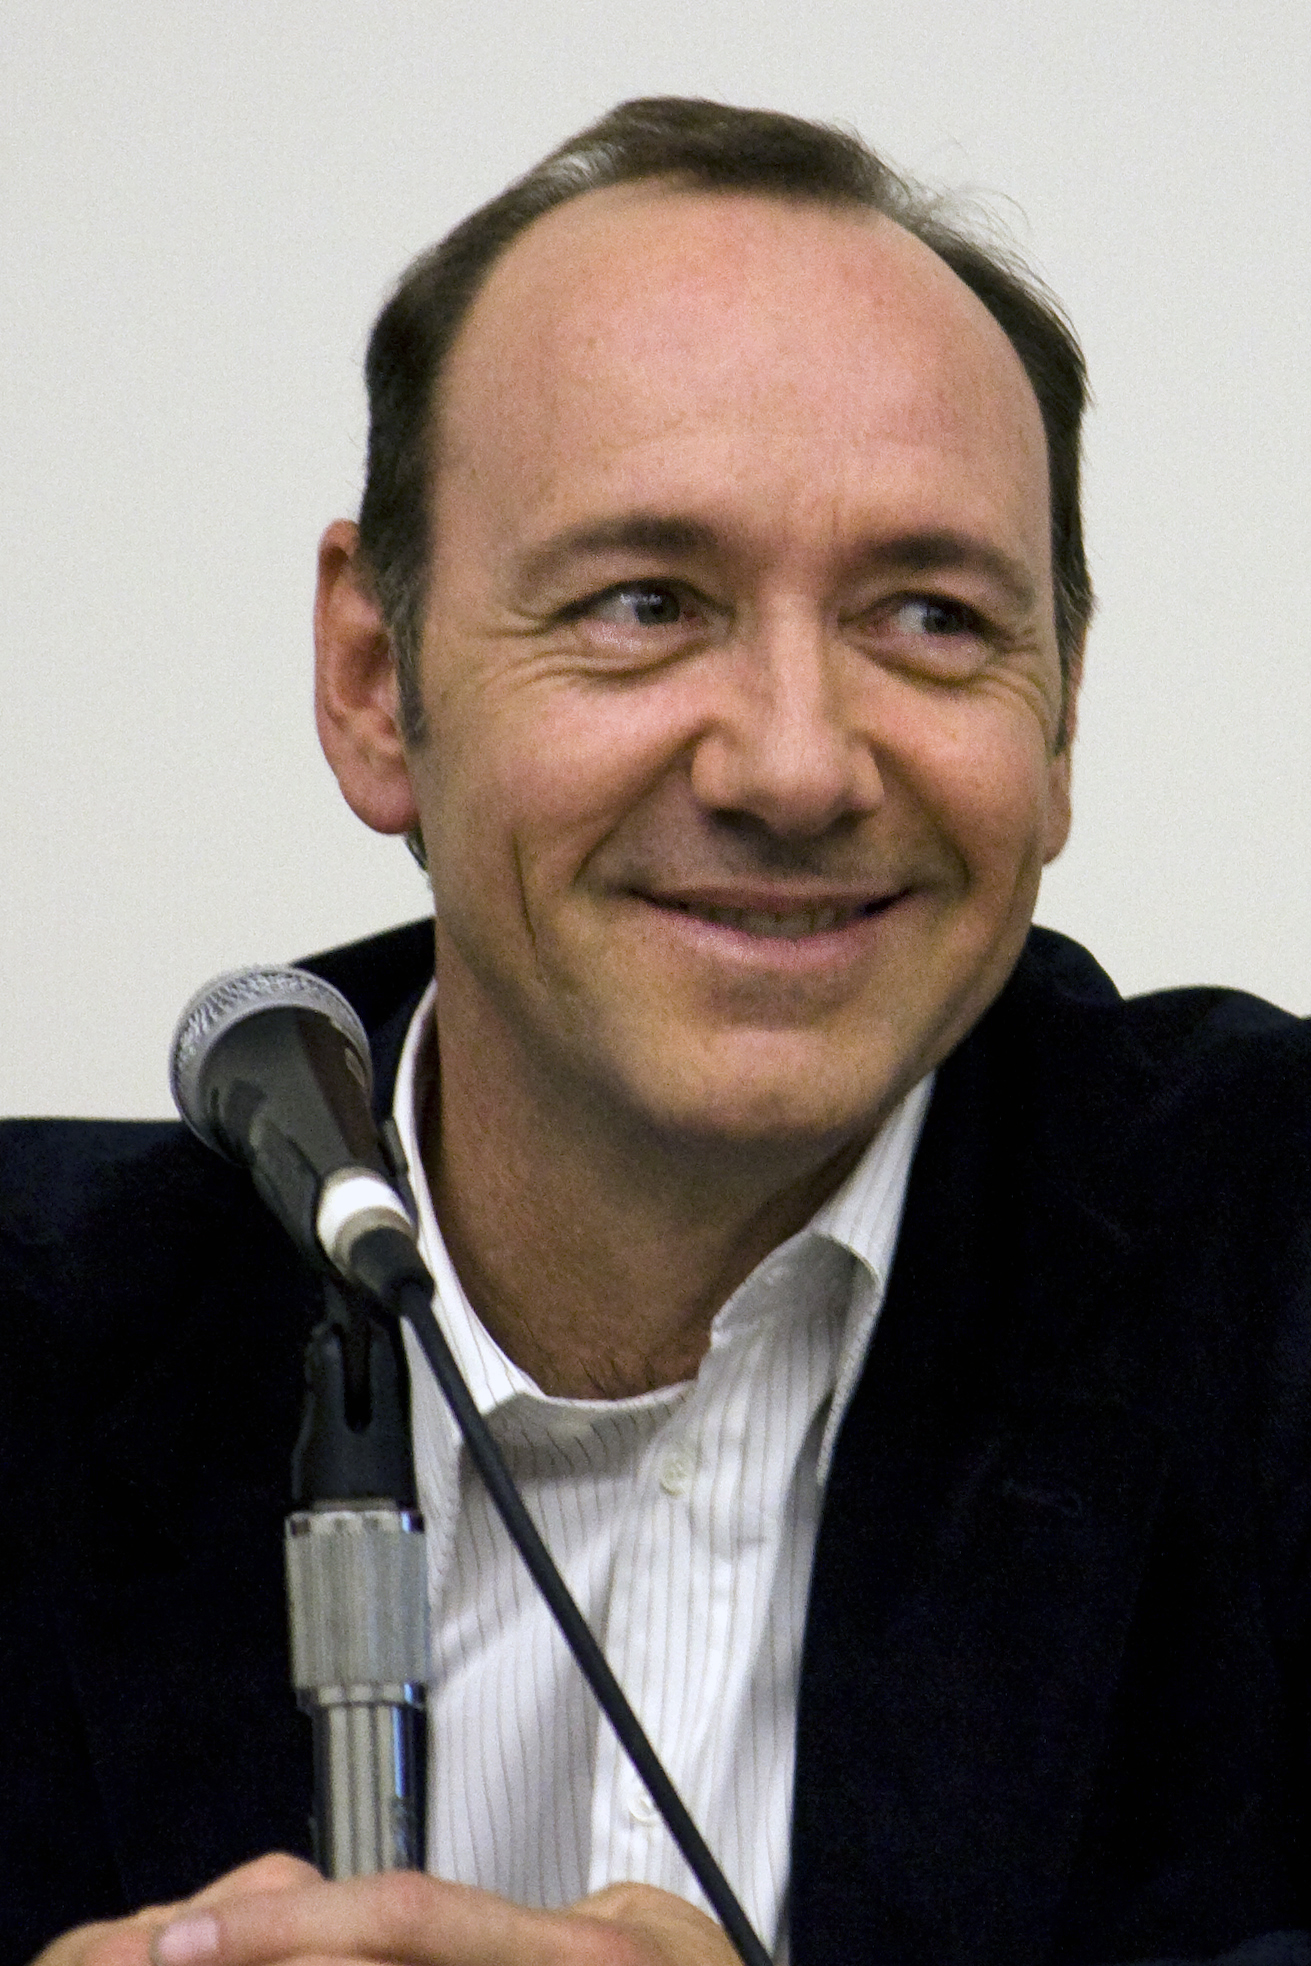 Kevin Spacey earned a  million dollar salary - leaving the net worth at 80 million in 2018